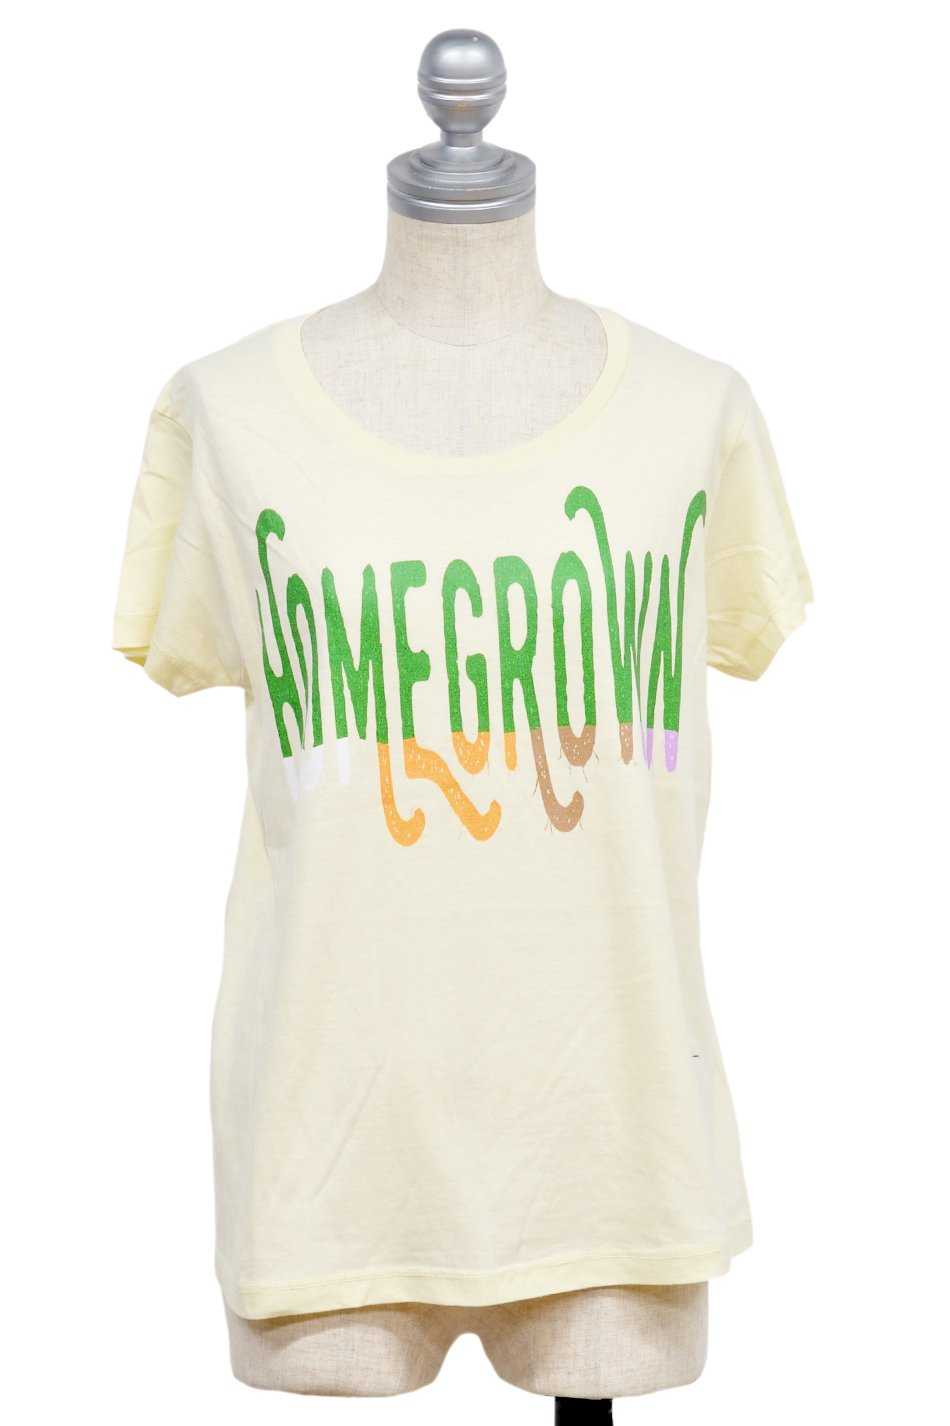 ARIGATO FAKKYU - アリガトファッキュ HOMEGROWN T-Shirt / Ladies Natural